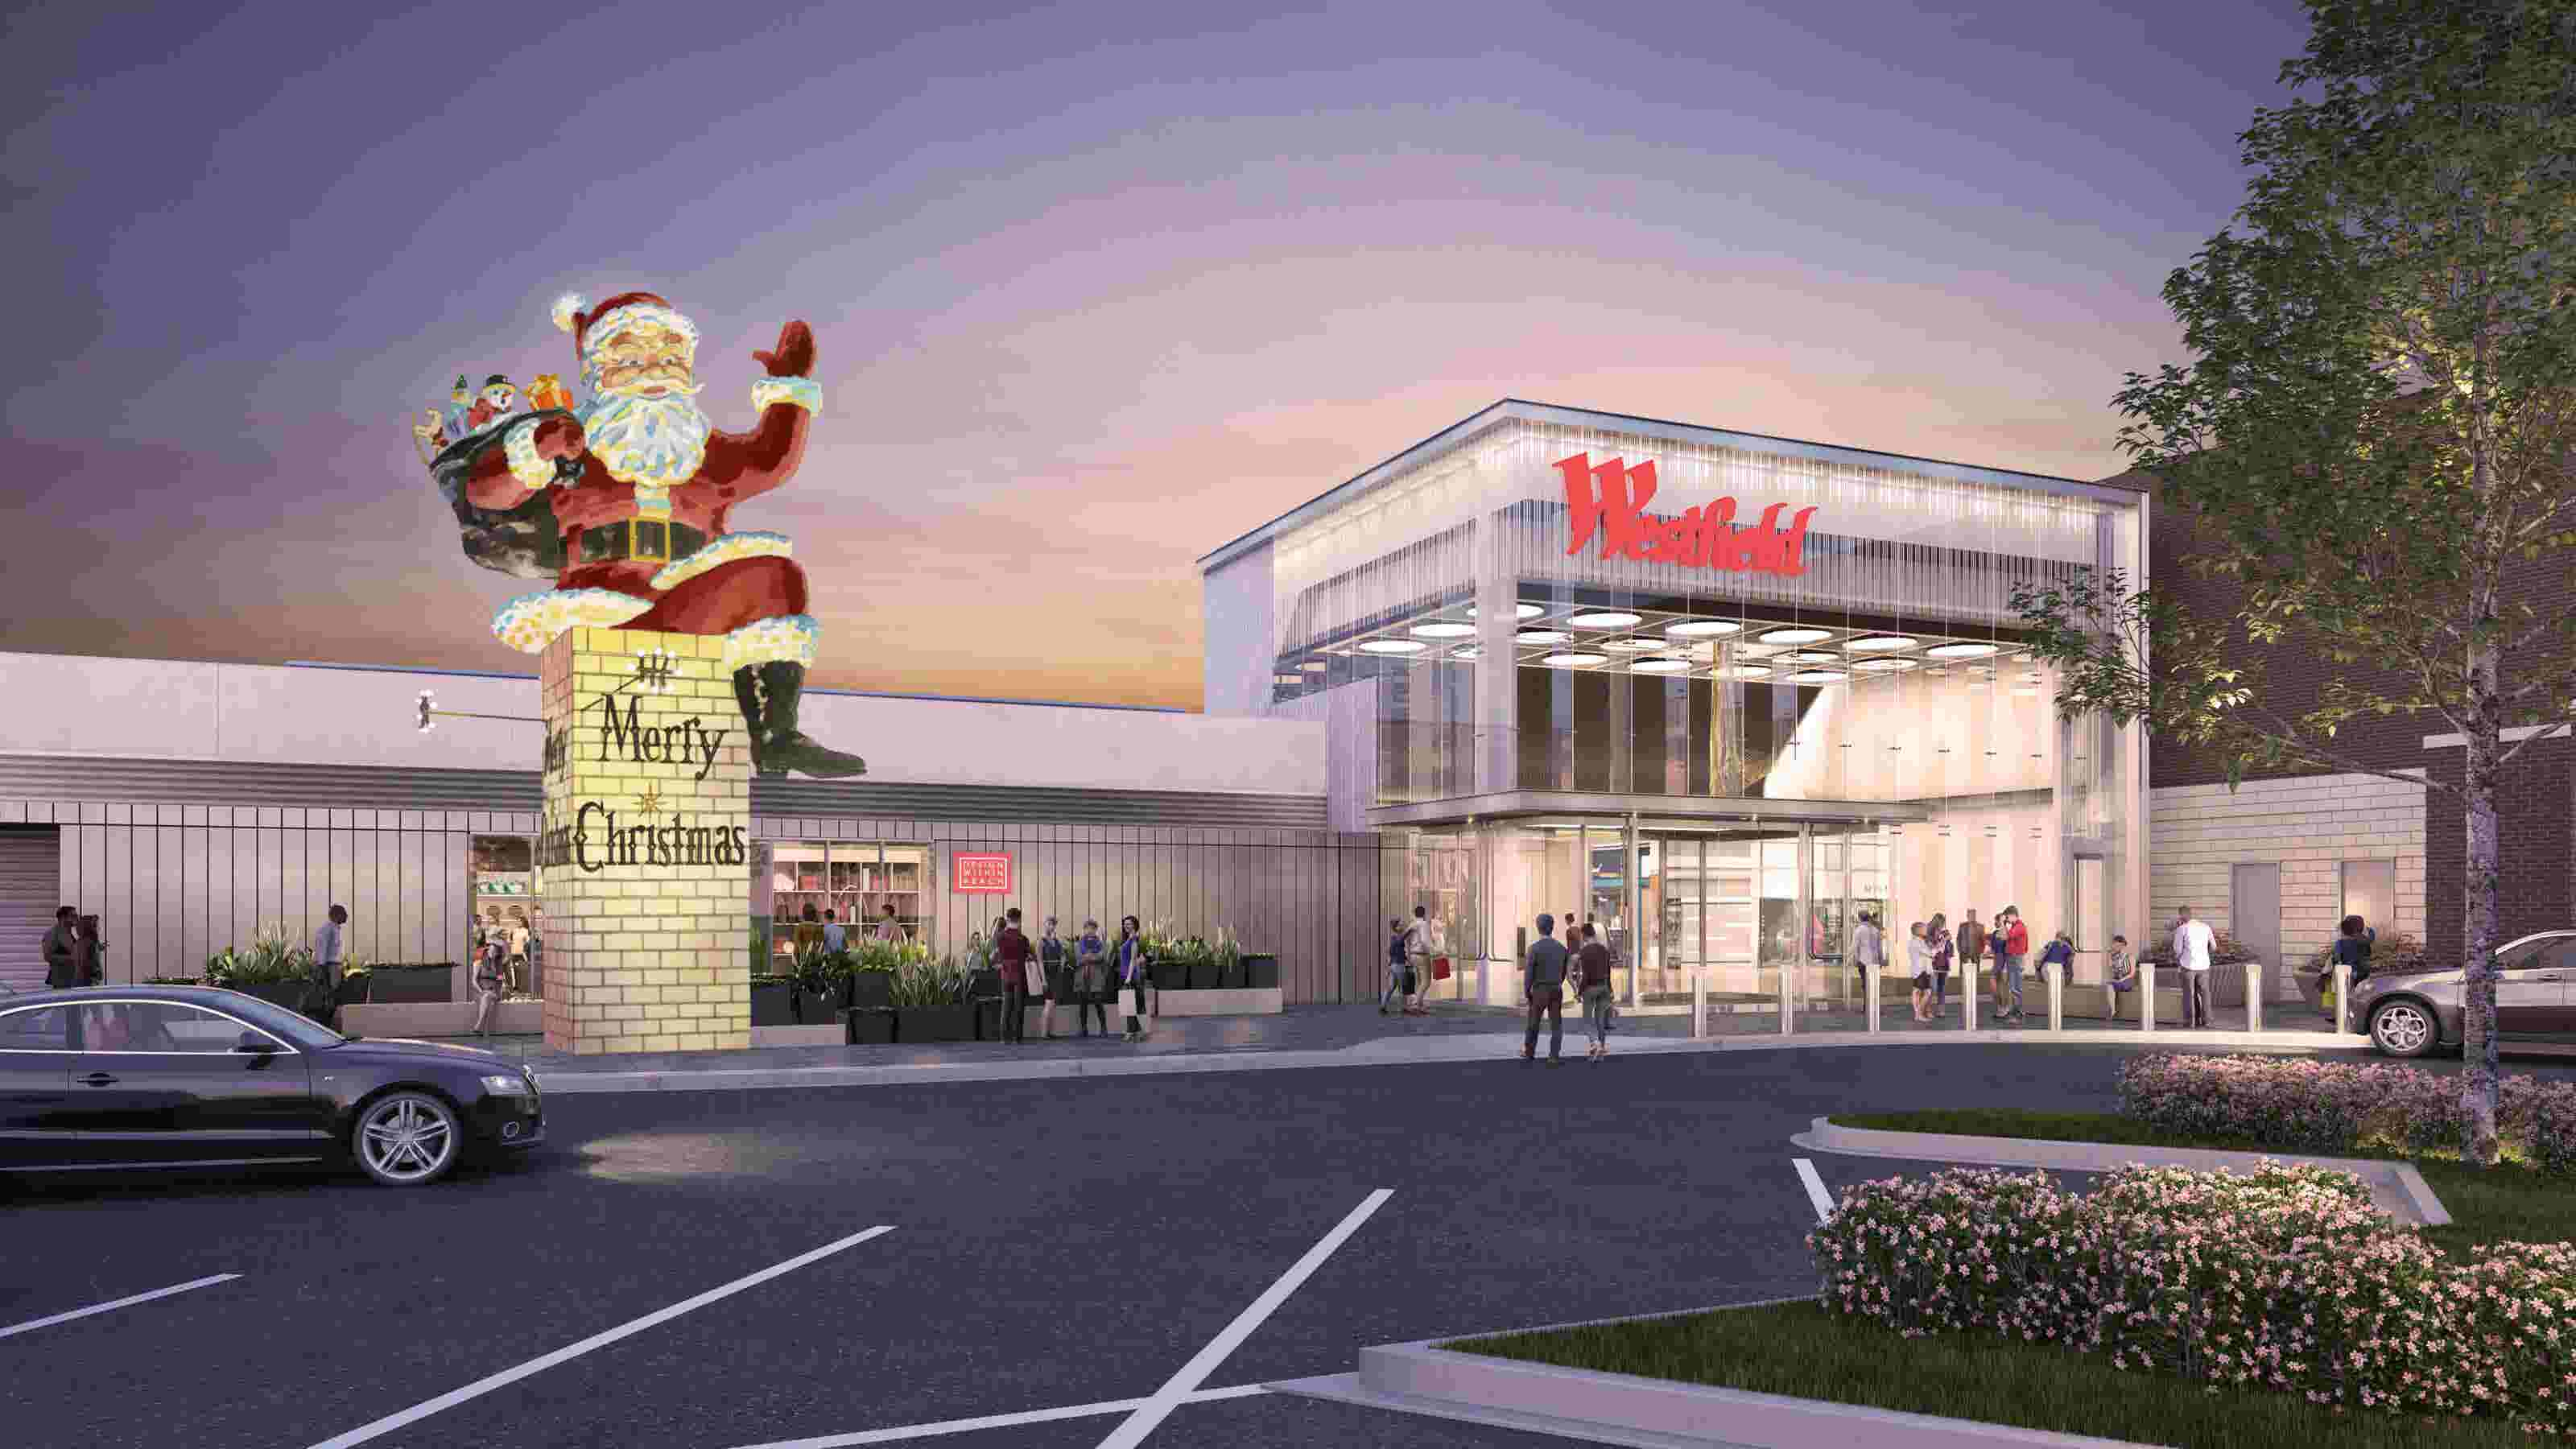 Big Santa making nostalgic return to Garden State Plaza in Paramus NJ